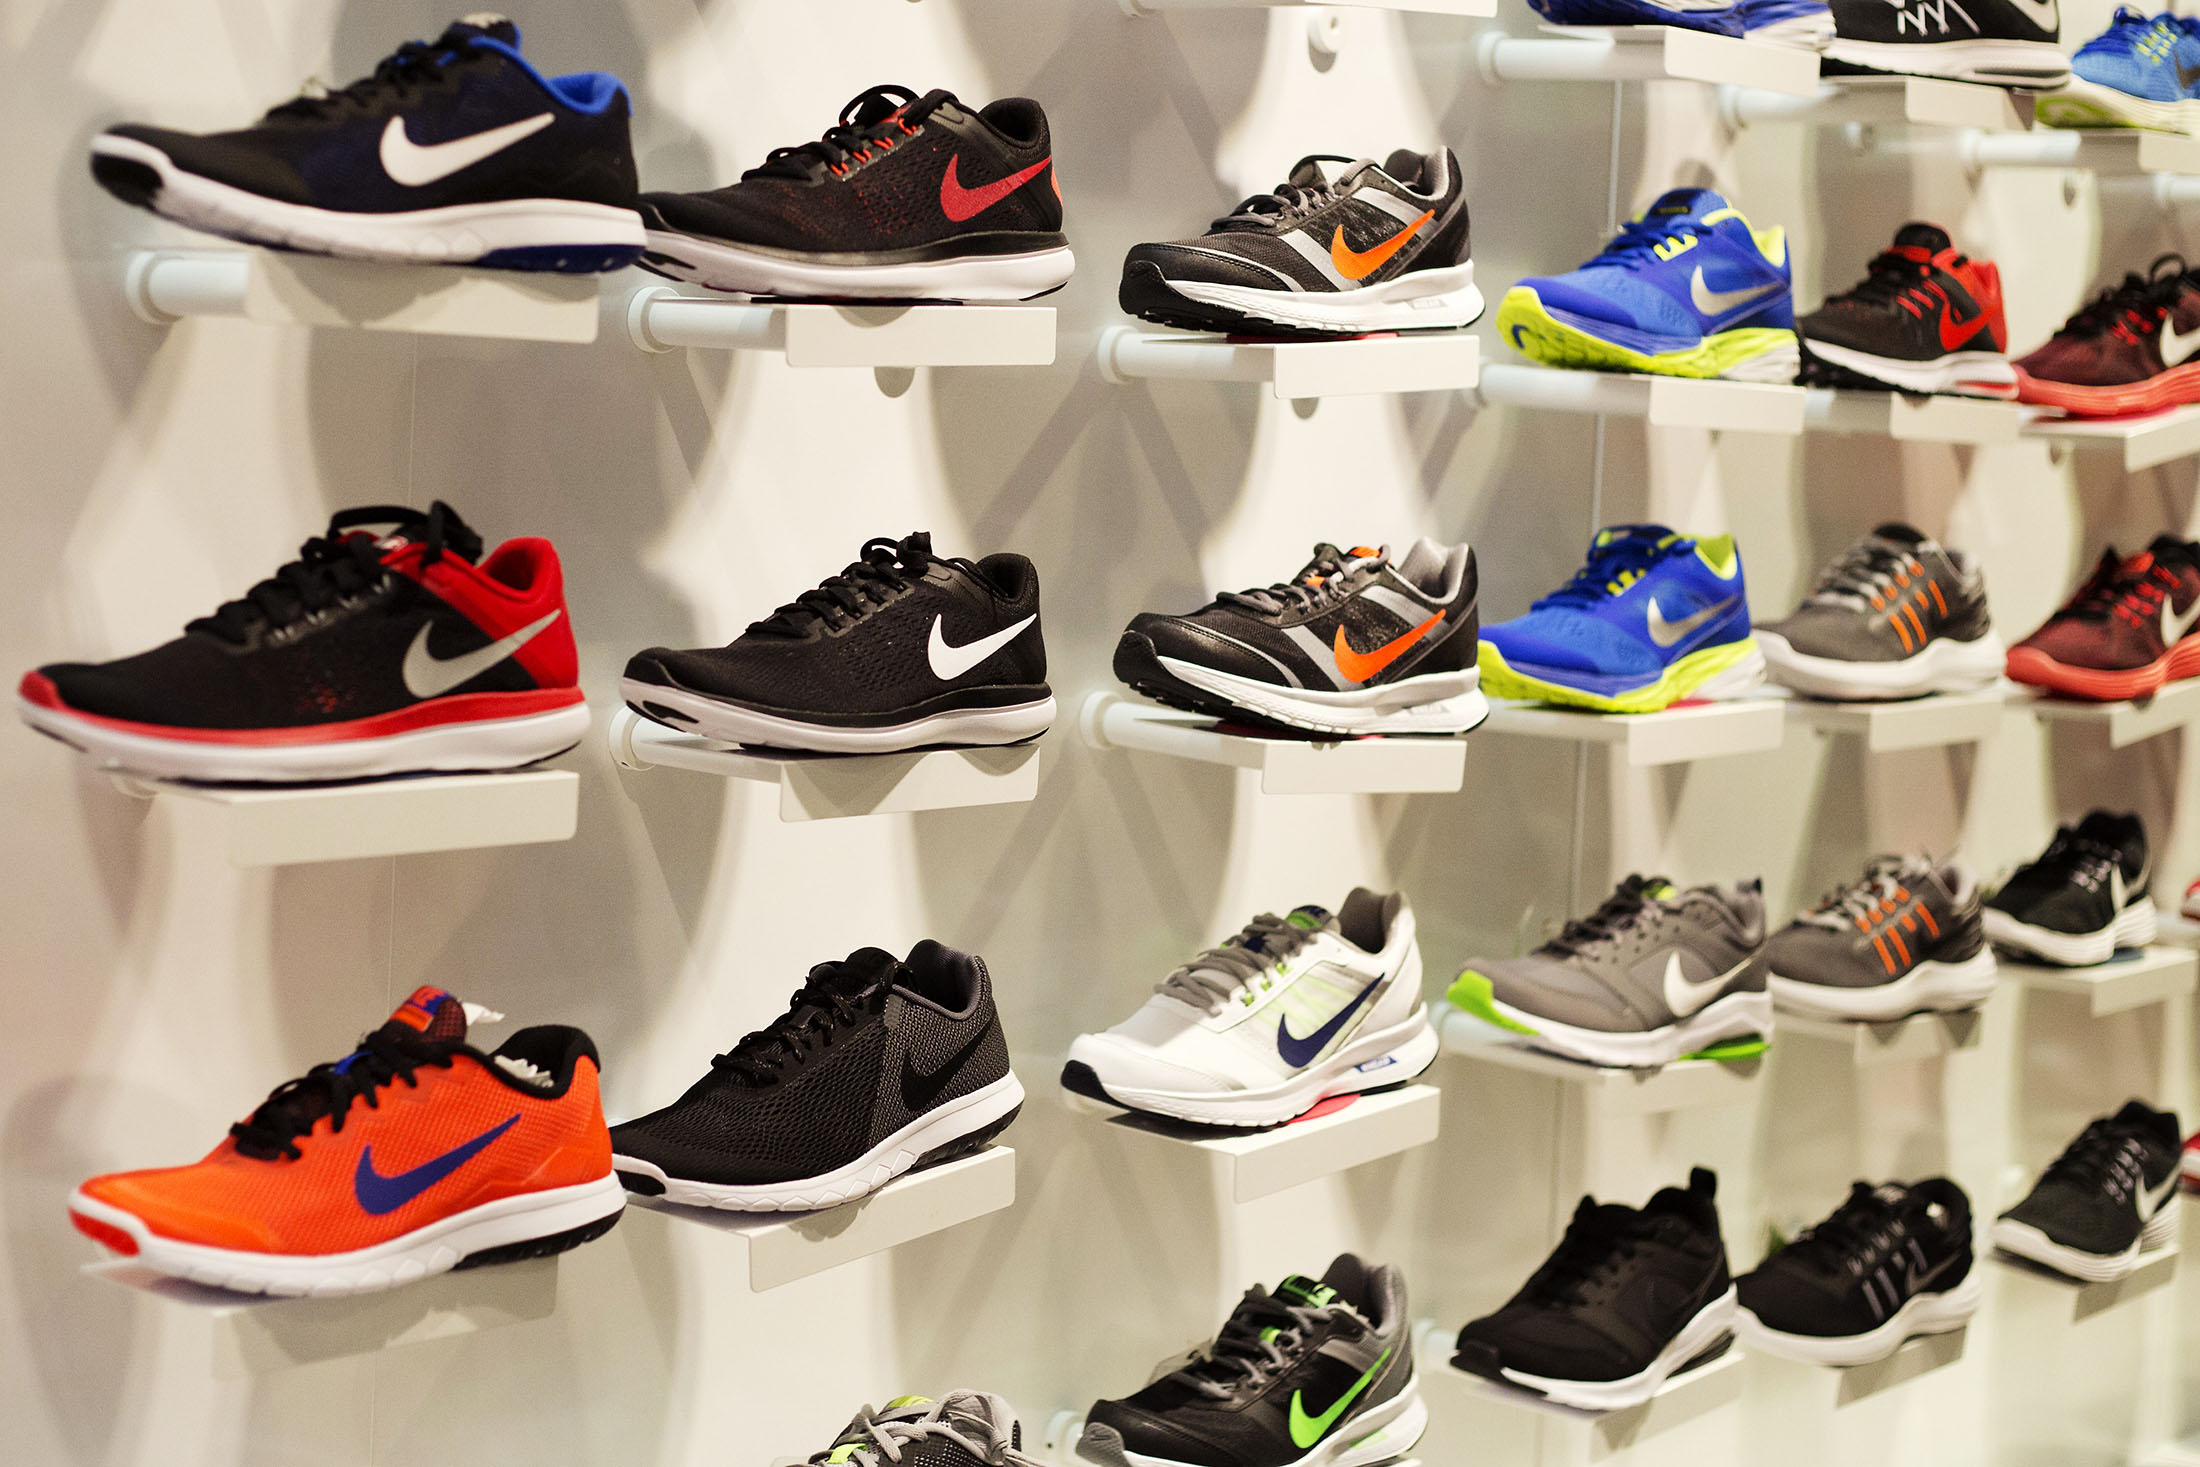 nike shoes vietnam made missile defense companies by revenue 943